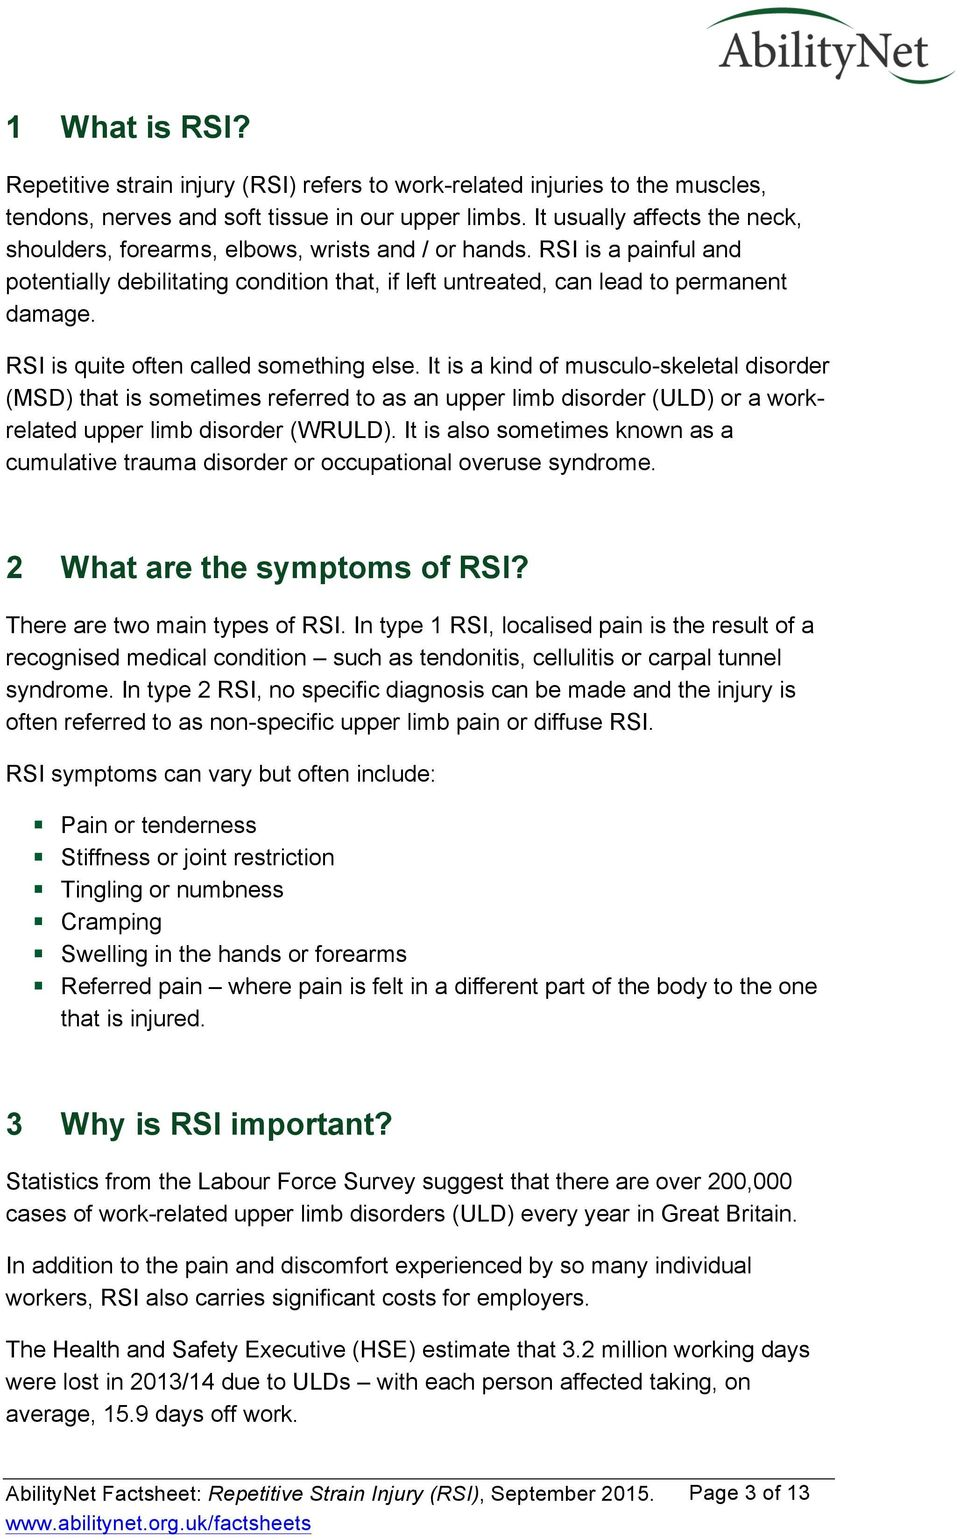 RSI is quite often called something else. It is a kind of musculo-skeletal disorder (MSD) that is sometimes referred to as an upper limb disorder (ULD) or a workrelated upper limb disorder (WRULD).